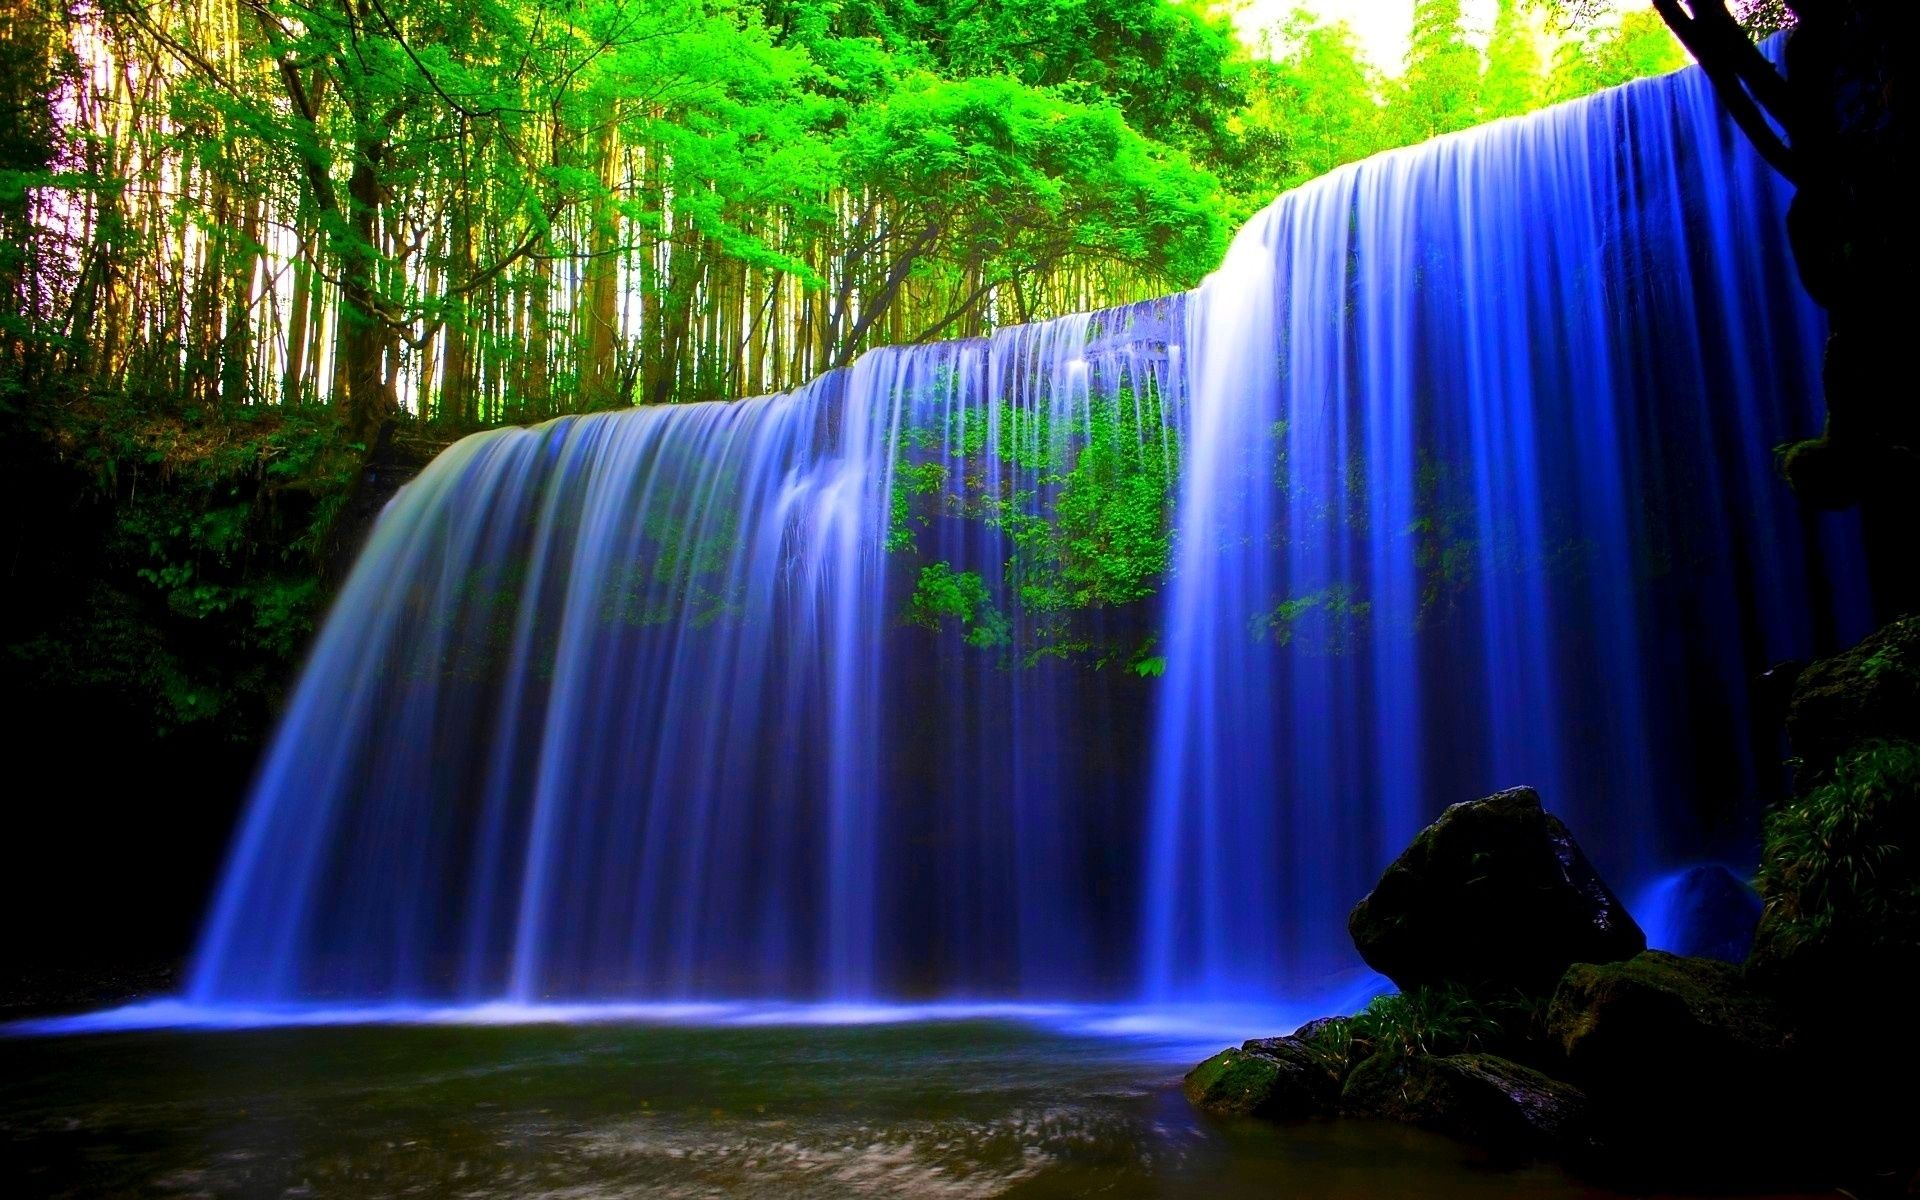 D Wallpaper Free Download Waterfall Wallpaper Moving Wallpapers Water Live Wallpaper